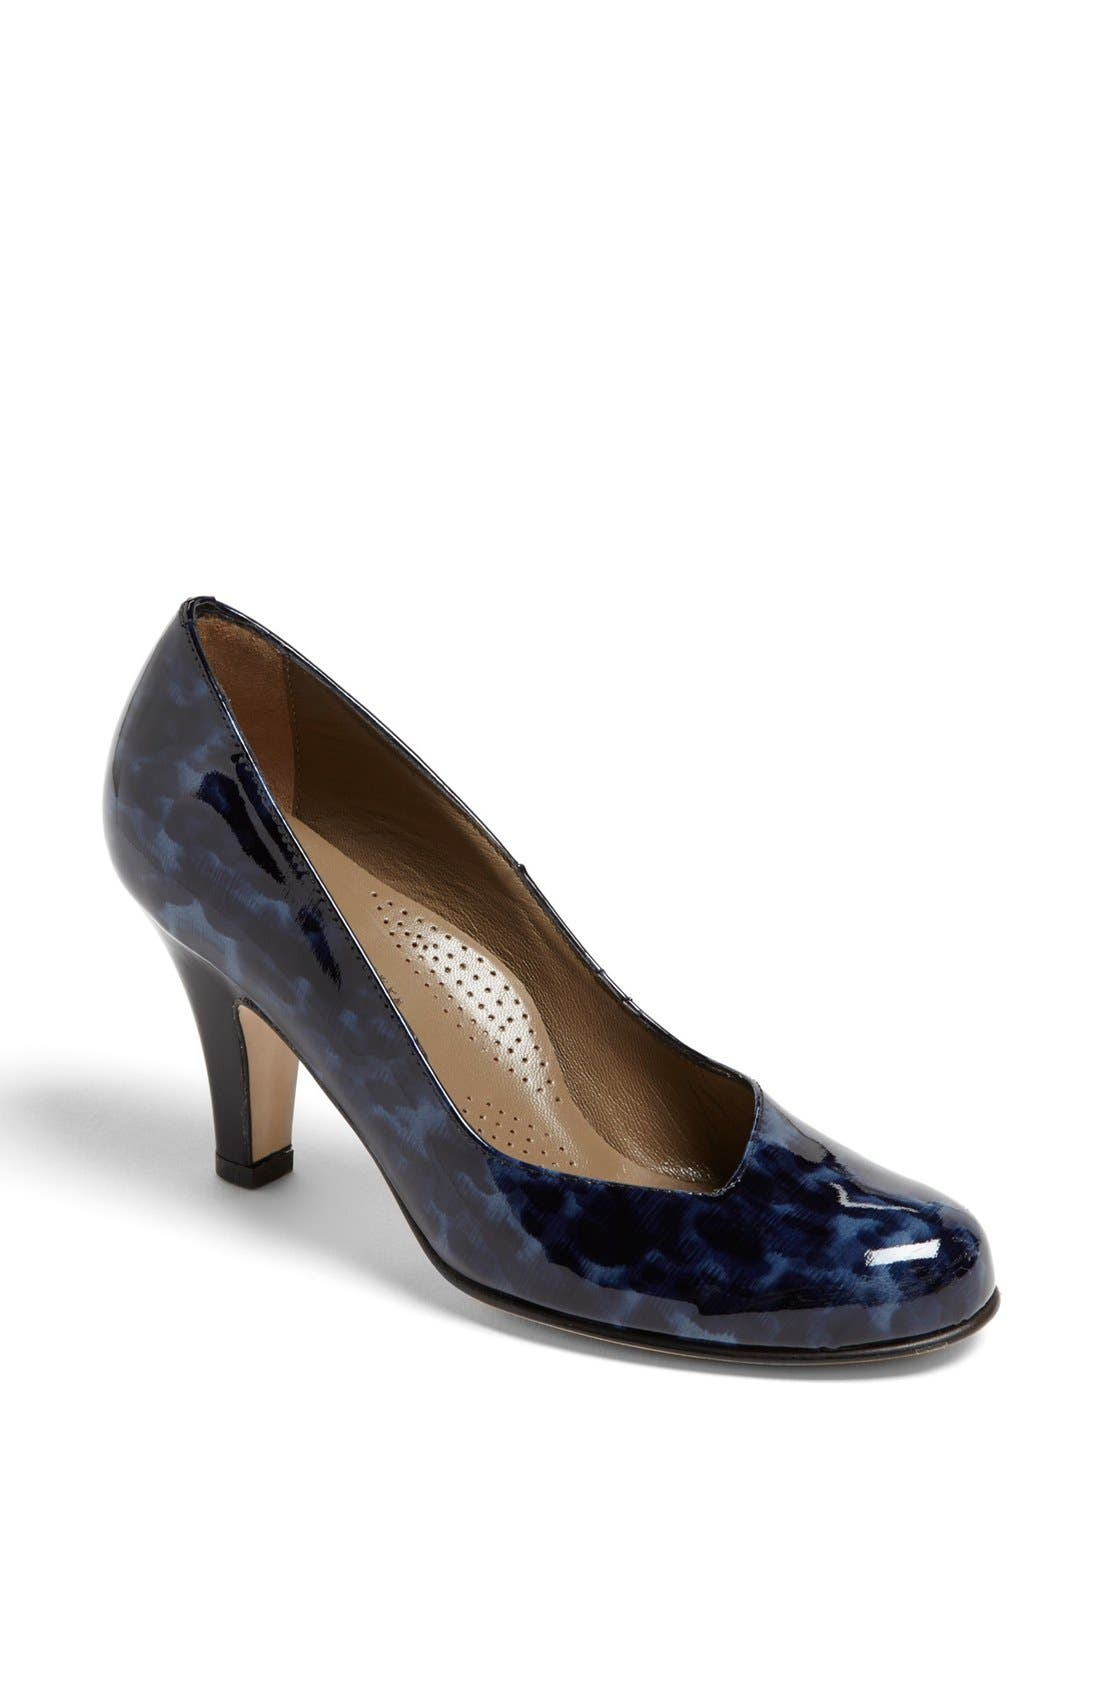 Alternate Image 1 Selected - Anyi Lu 'Emily' Pump